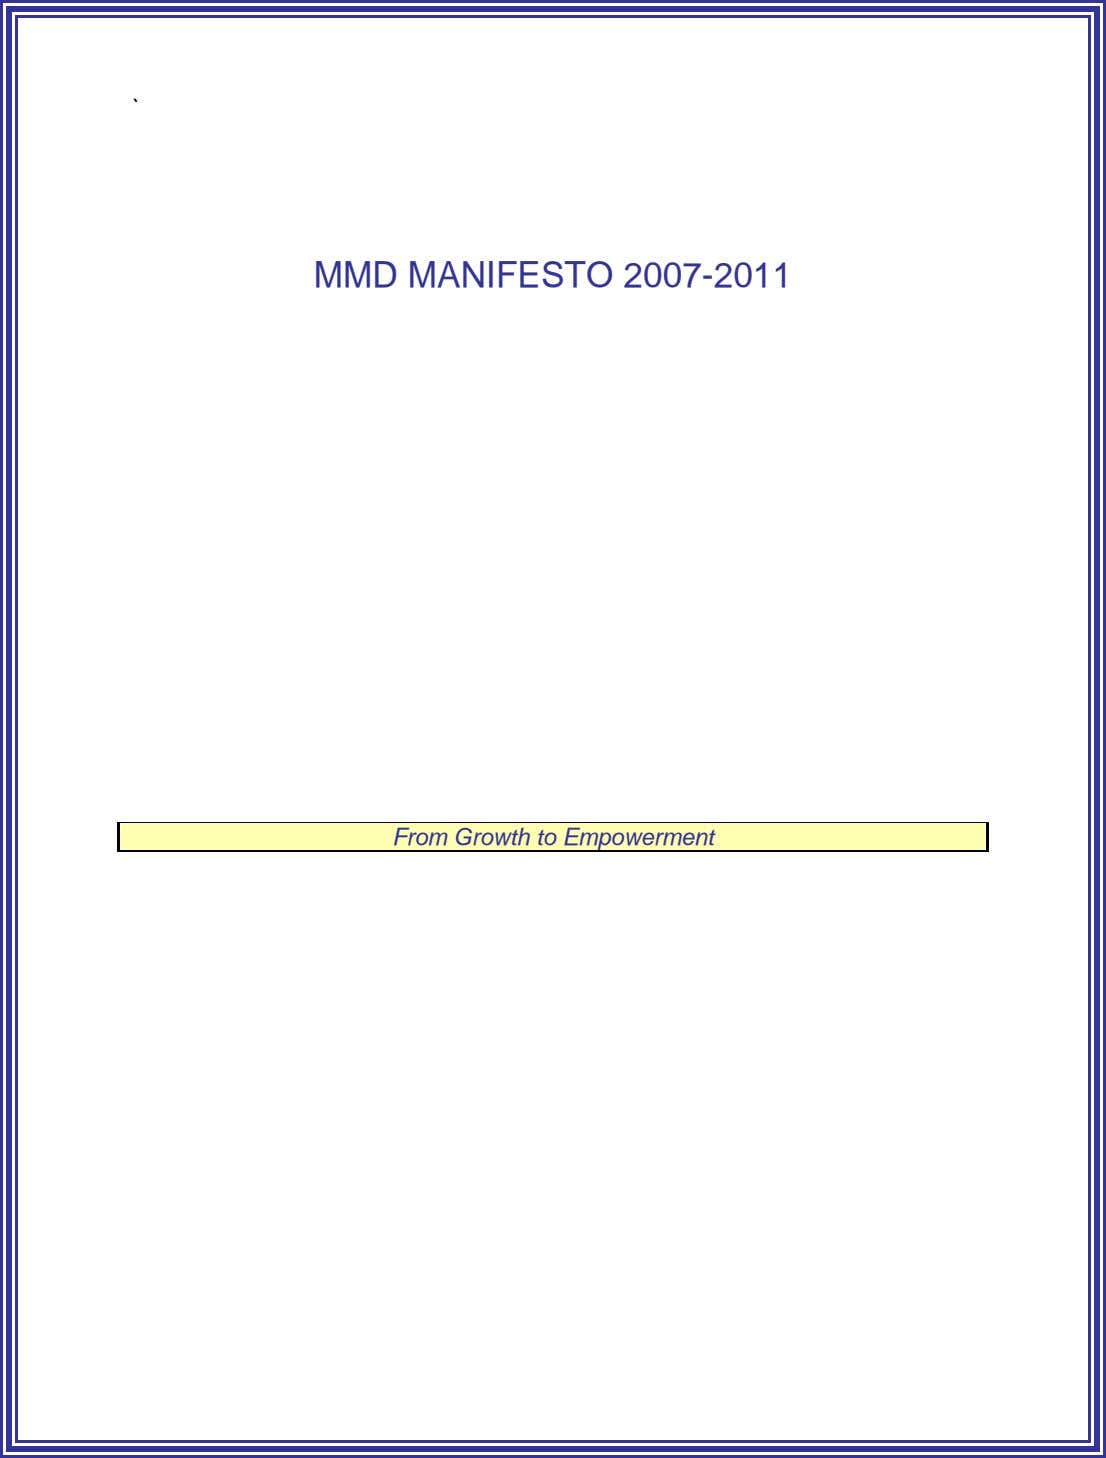 ` MMD MANIFESTO 2007-2011 From Growth to Empowerment